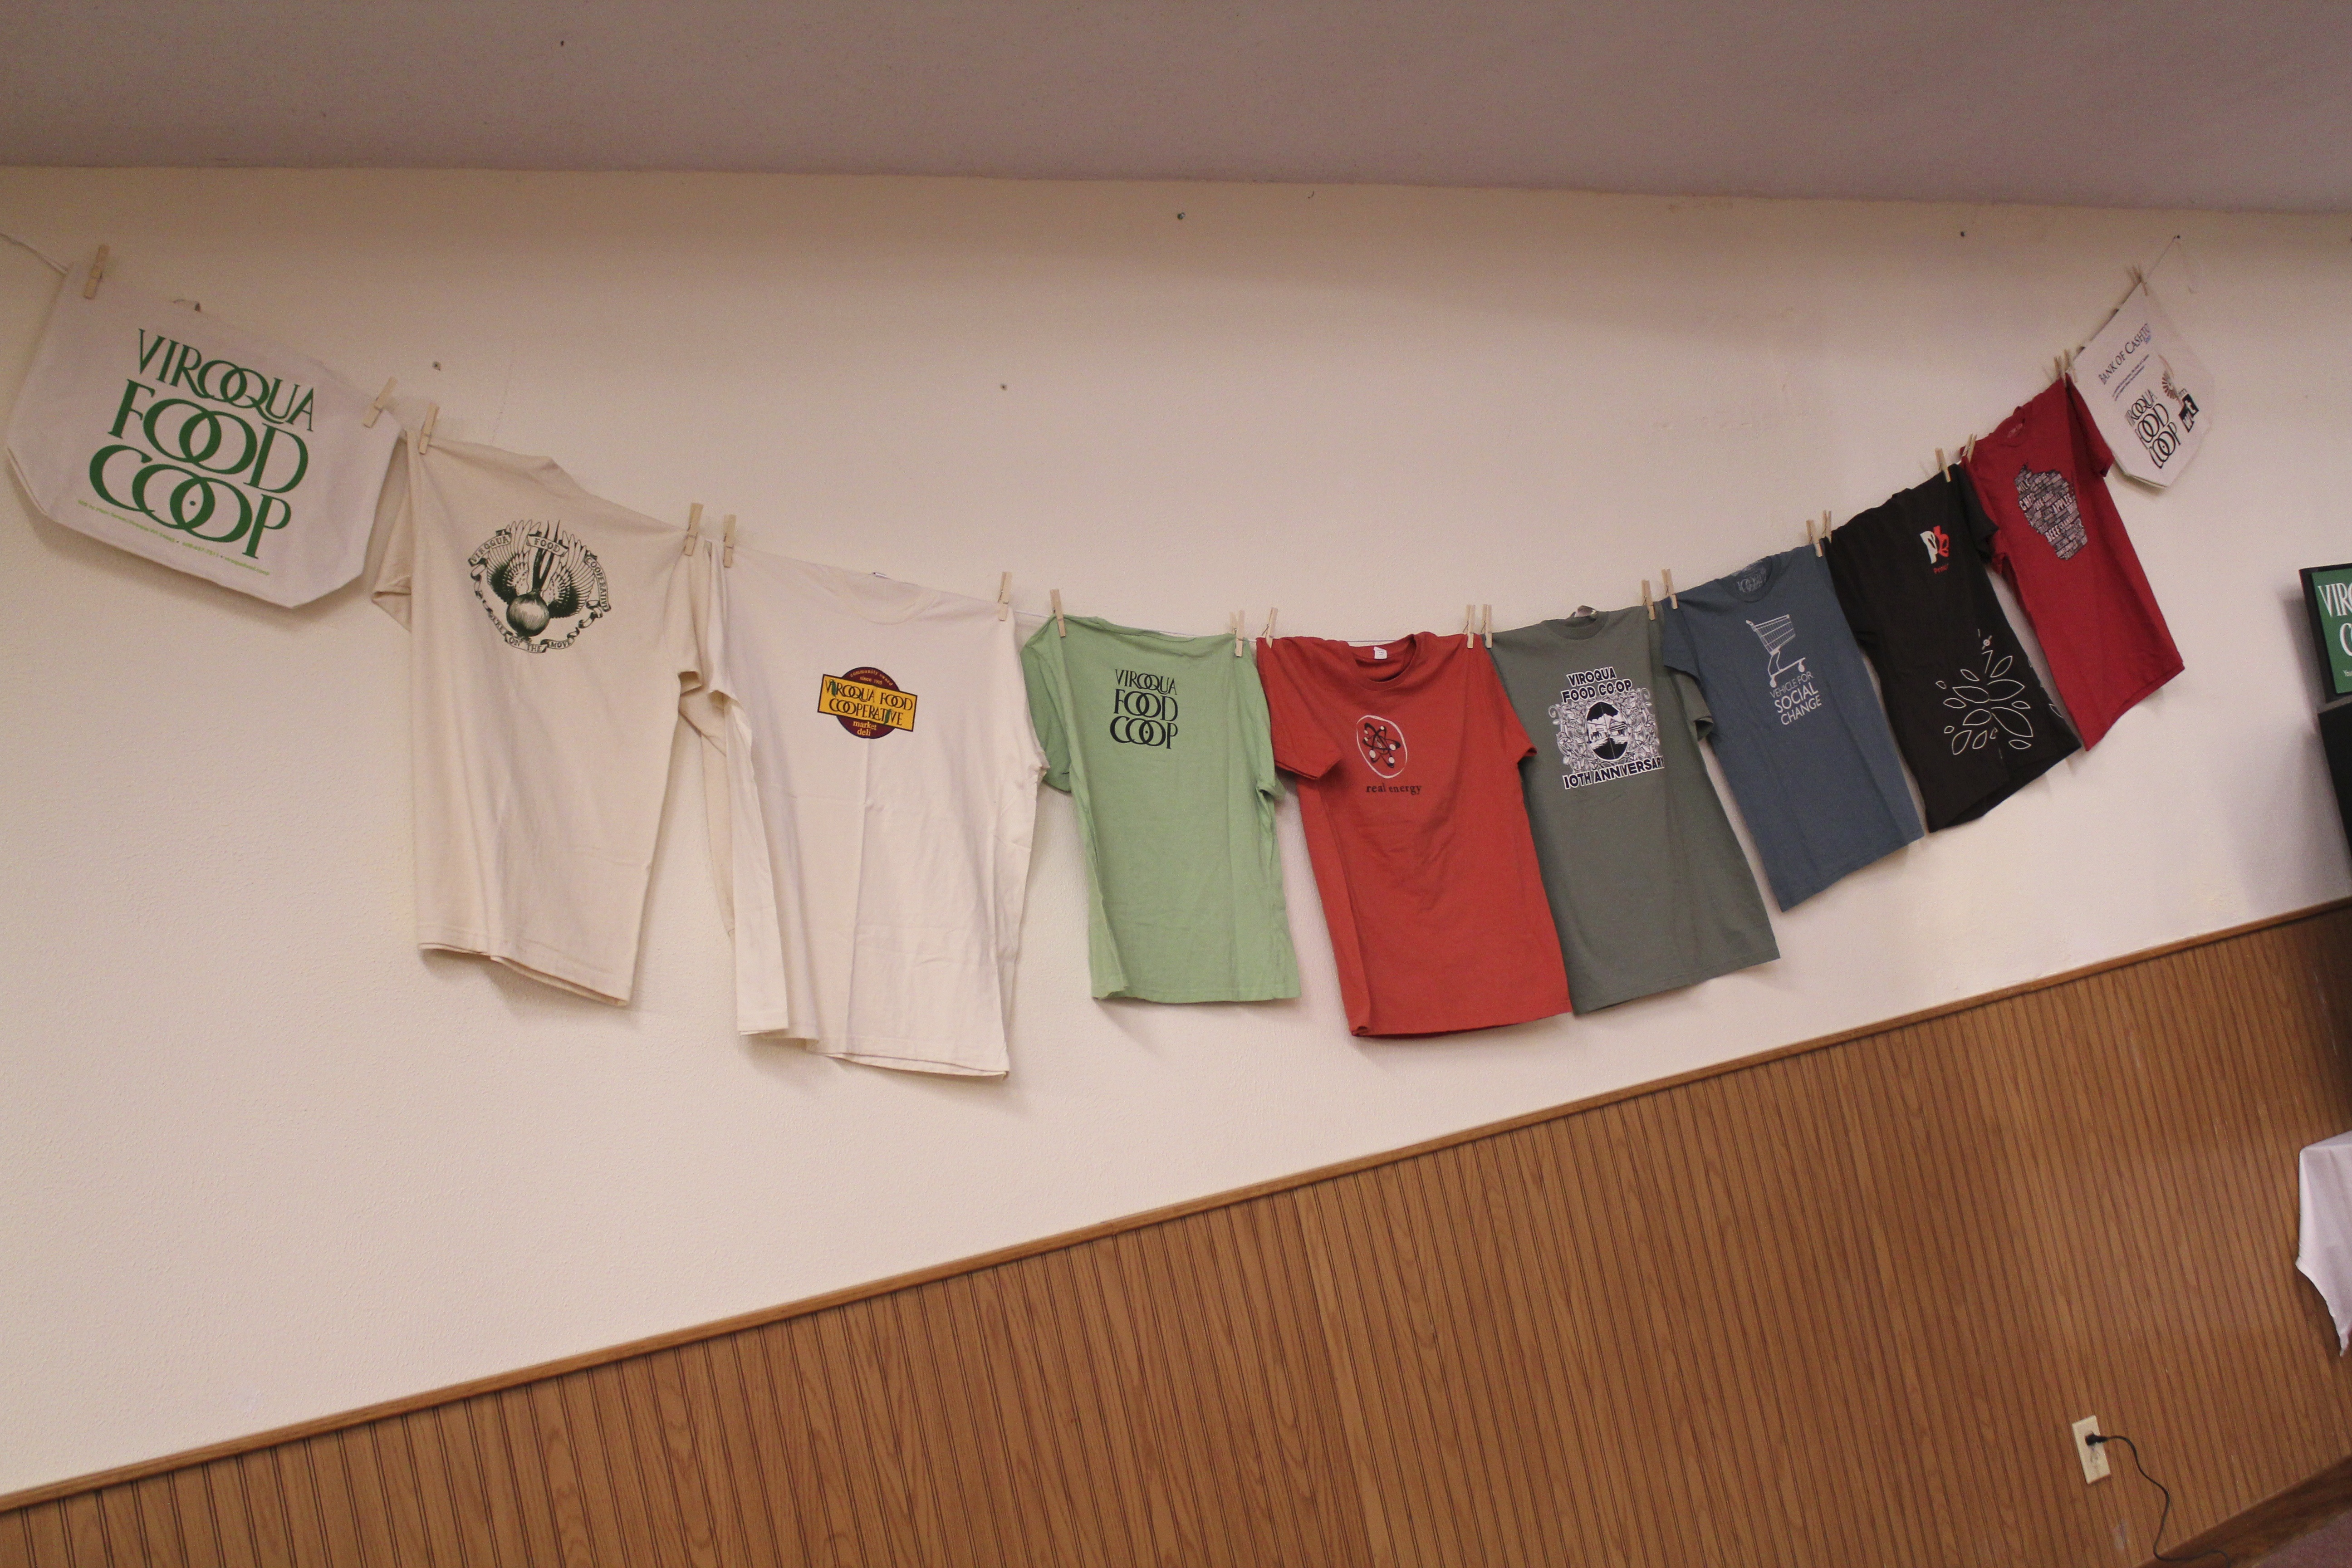 On display at the community conversation, were relics from VFC's history, such as these tees.